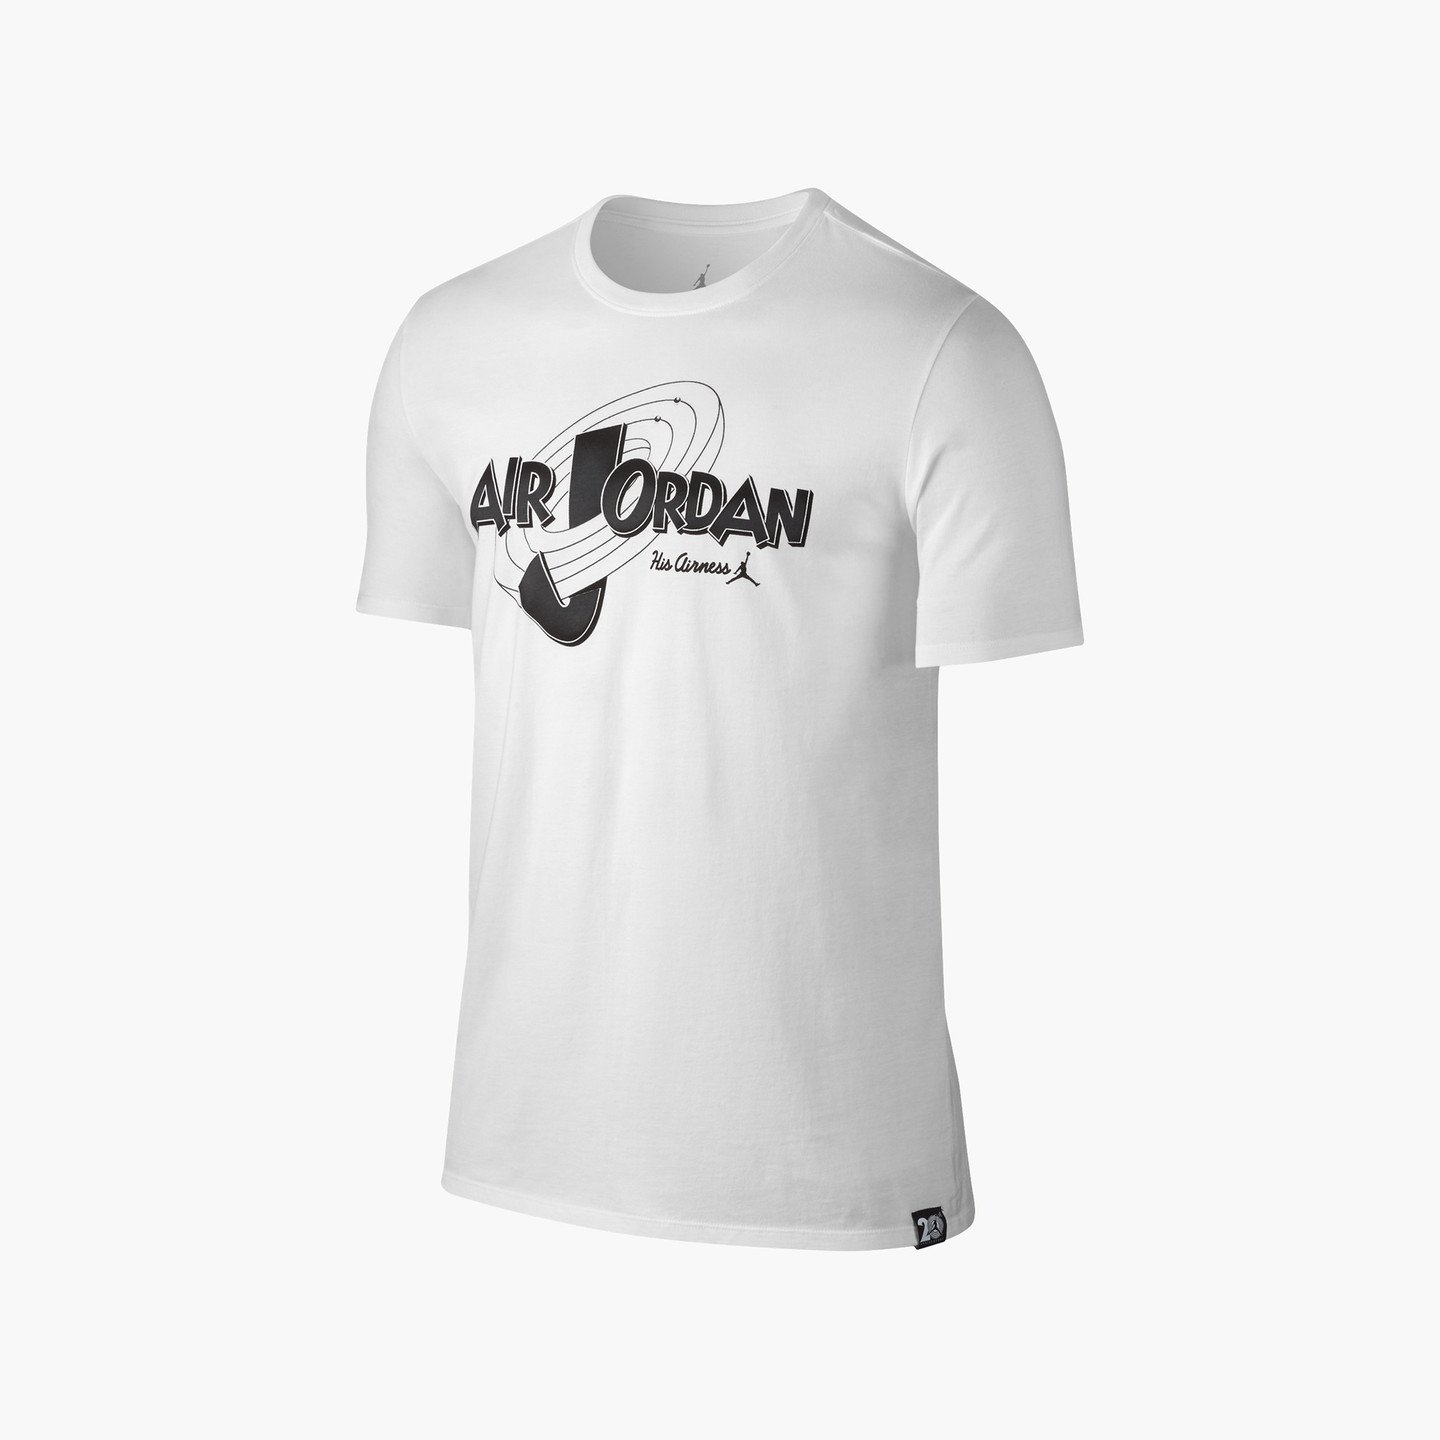 Jordan Air Jordan 11 T-Shirt White / Black 823718-100-XL